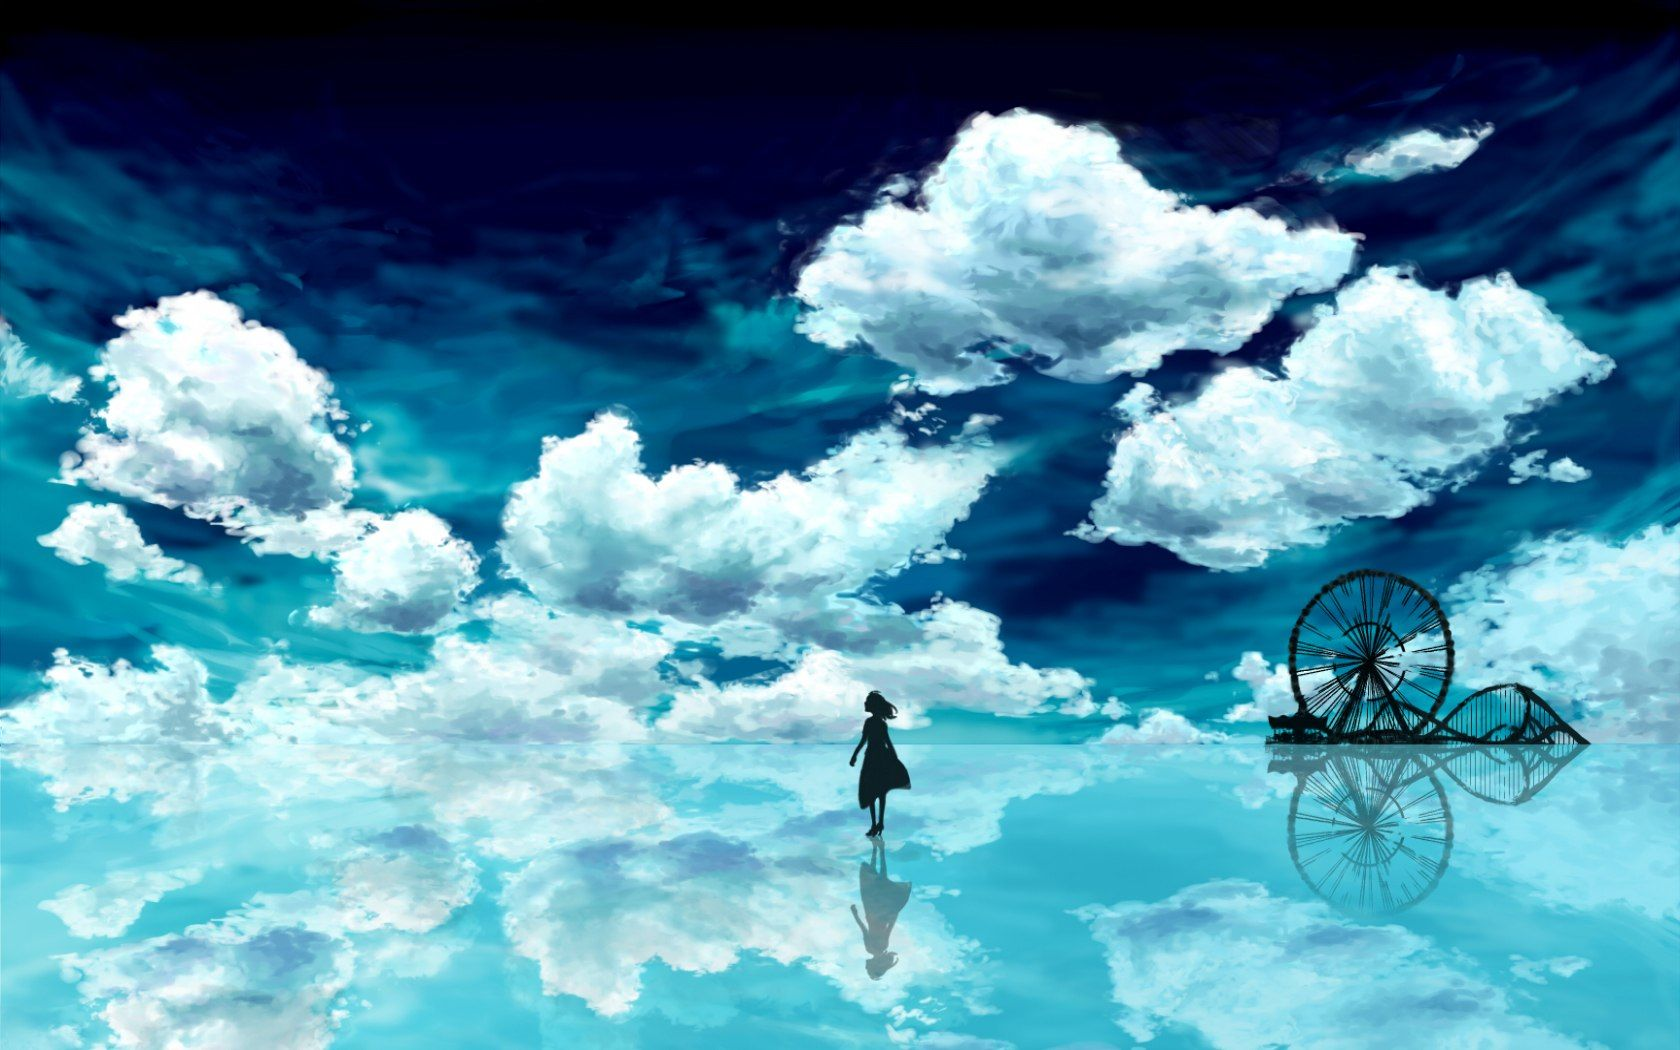 anime scenery wallpaper hd background wallpaper 34 hd wallpapers